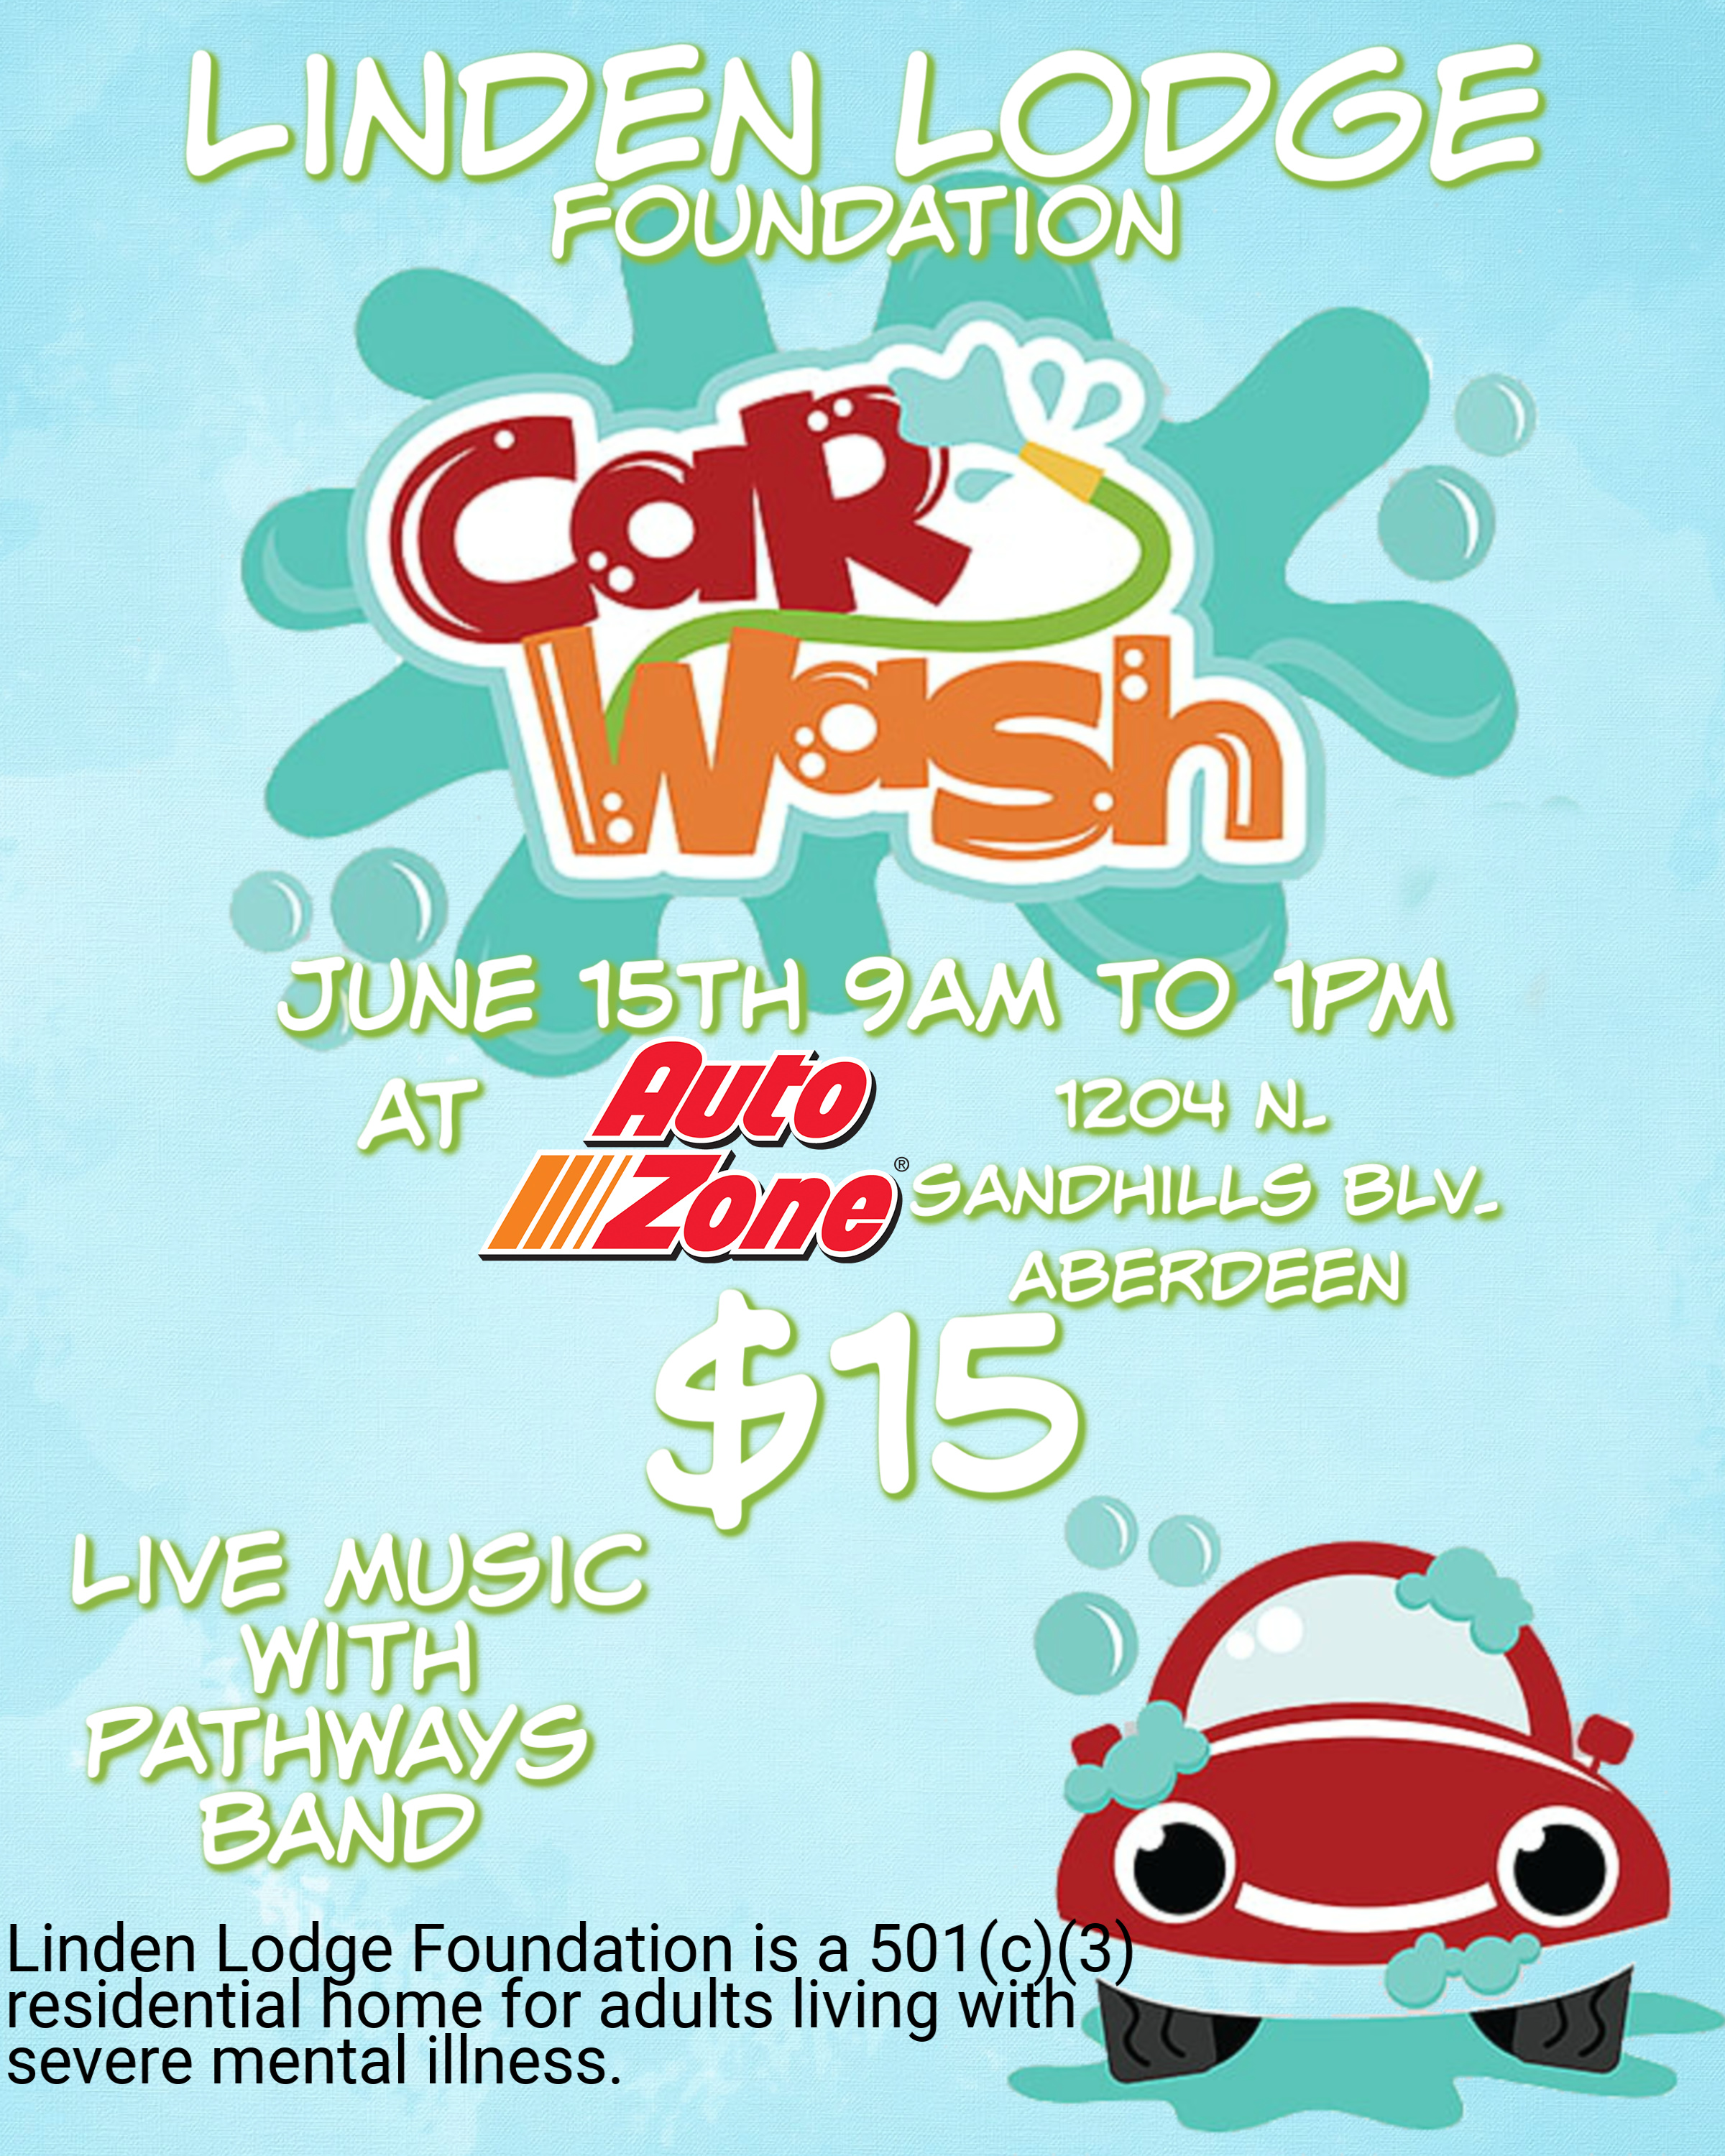 Car Wash Fundraiser Linden Lodge